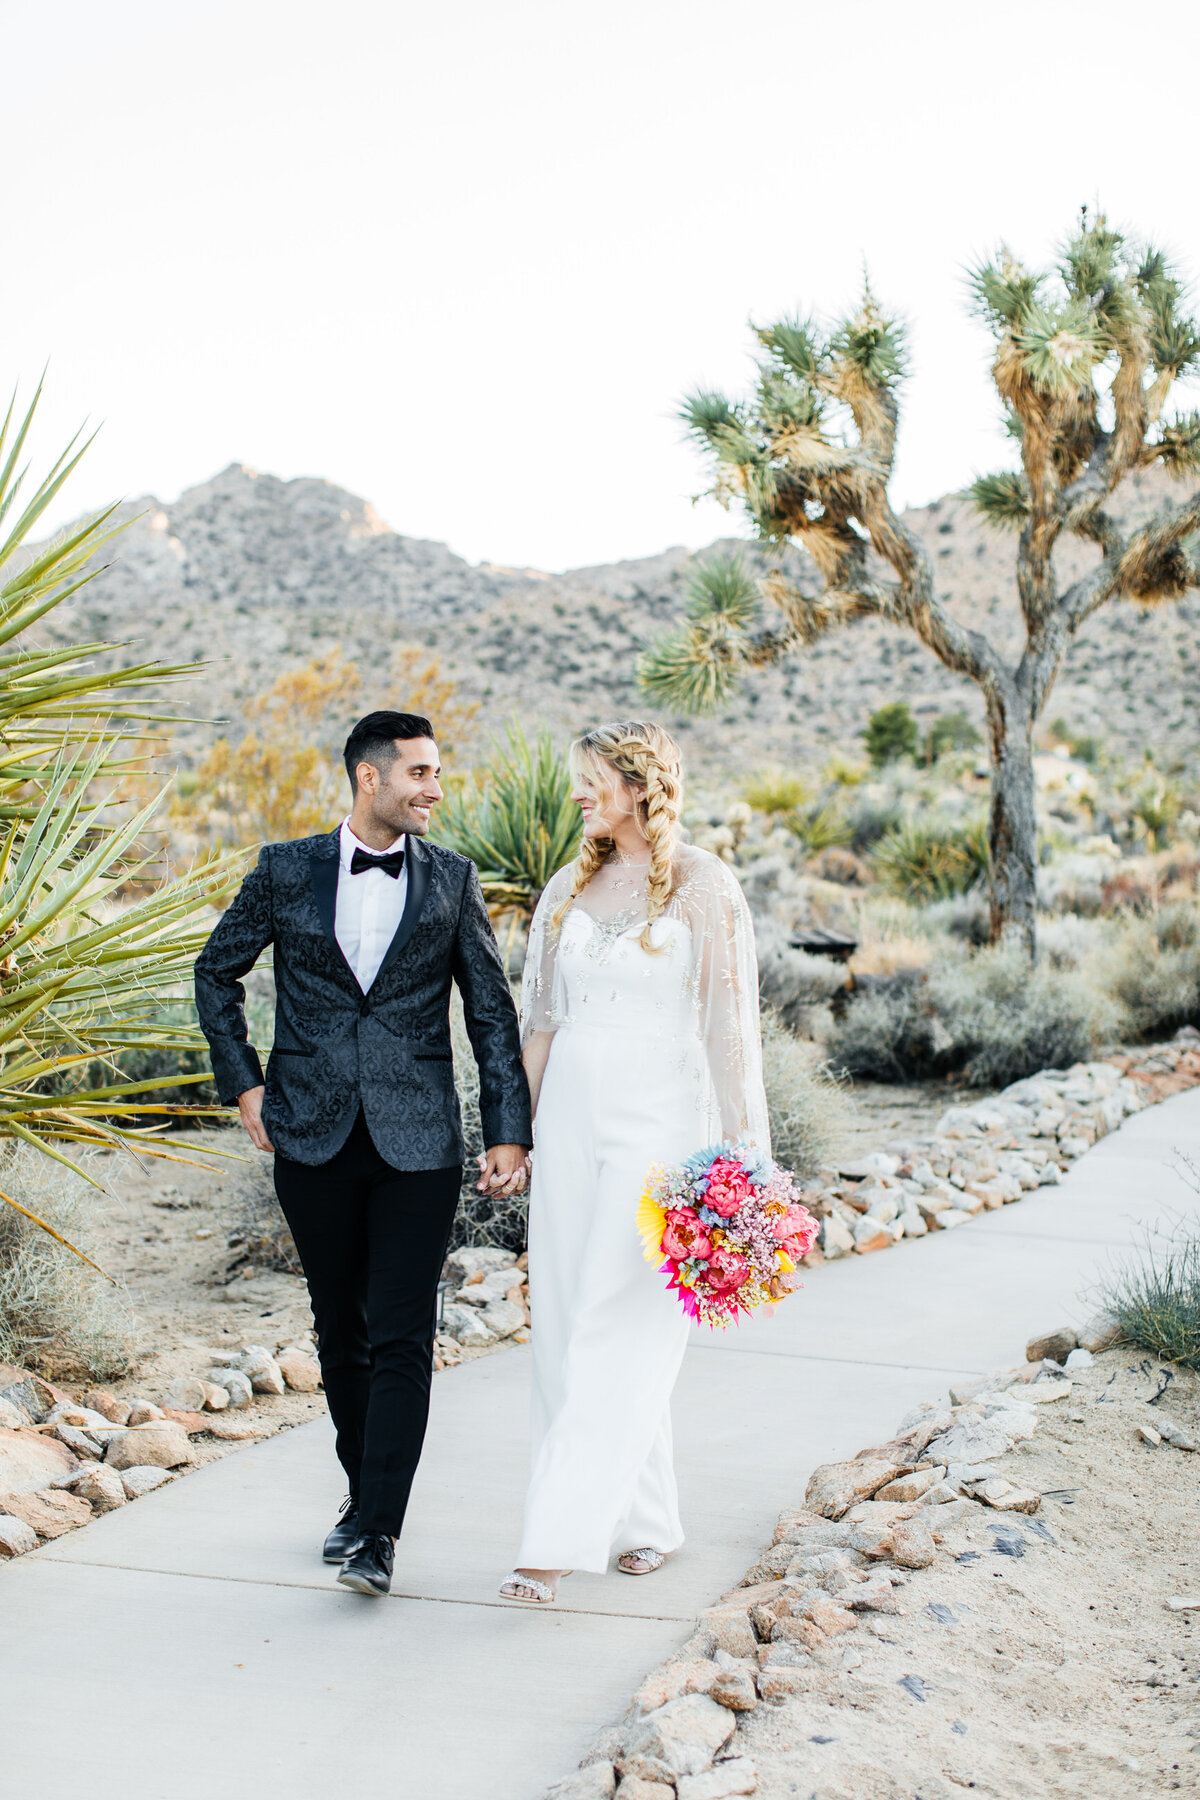 colorful-joshua-tree-elopement-inspiration-joshua-tree-wedding-photographer-palm-springs-wedding-photographer-erin-marton-photography-40